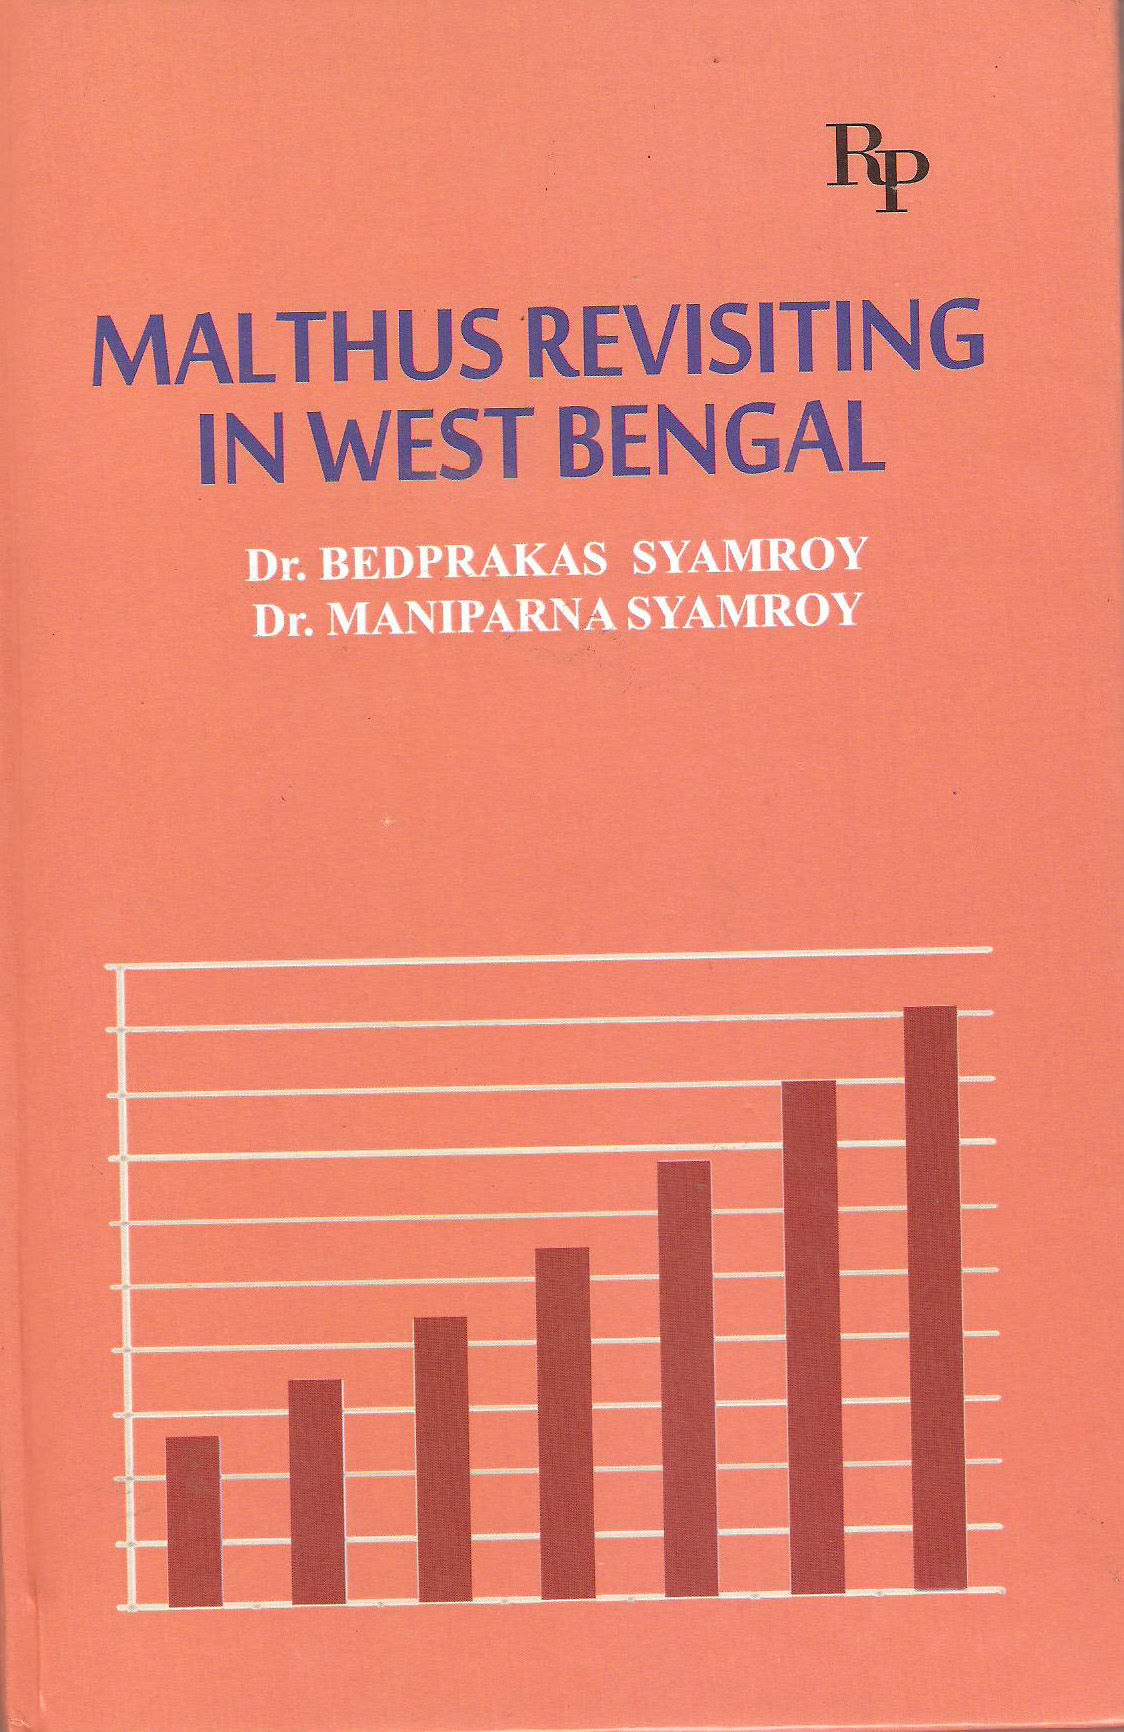 Malthus Revisiting in West Bengal